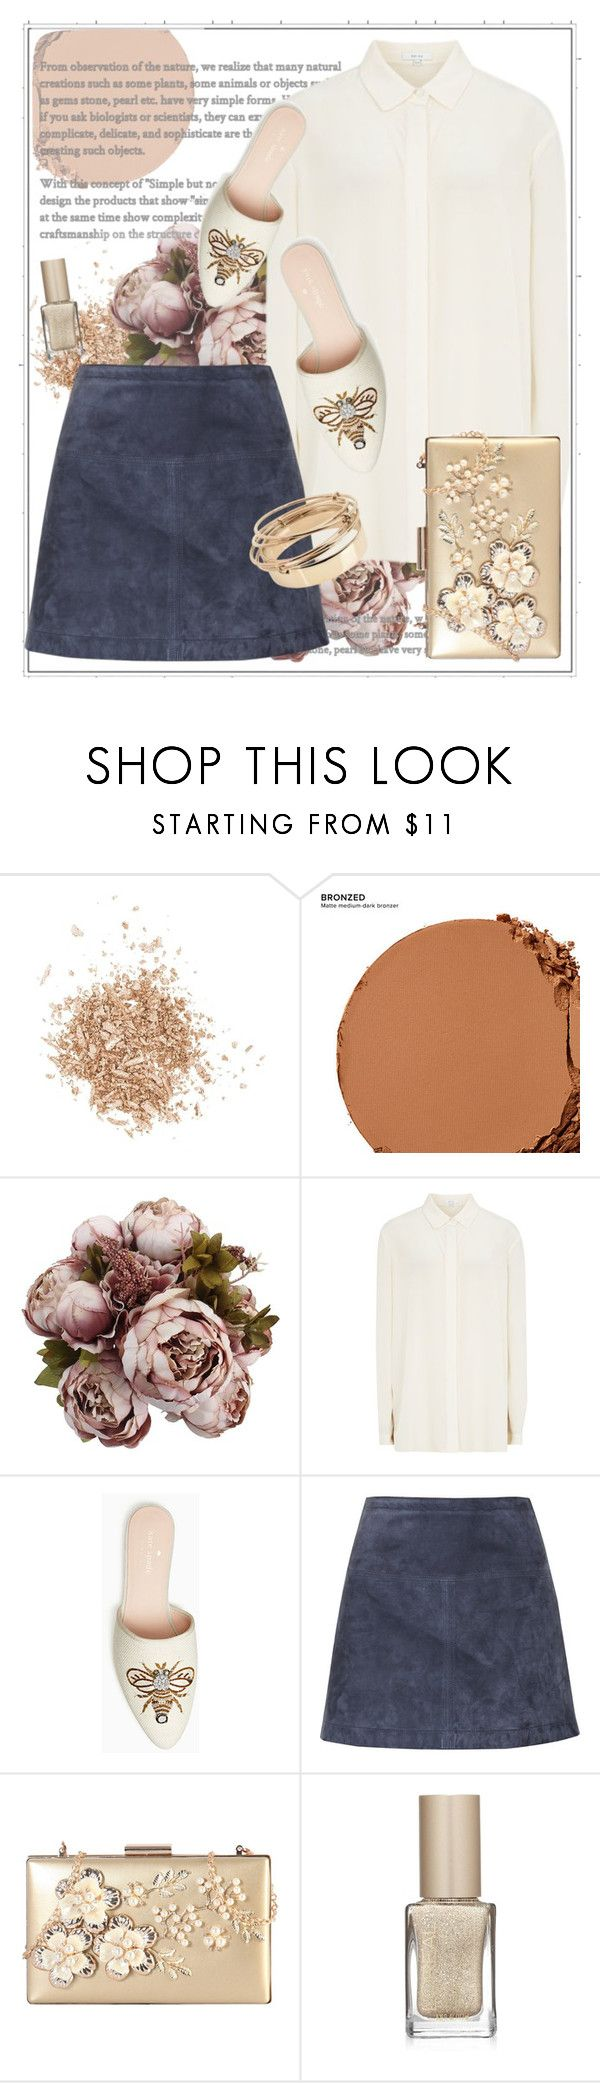 """Без названия #283"" by kalashnikovanataly on Polyvore featuring Topshop, Urban Decay, Burberry, Rimen & Co., L'Oréal Paris and Valentino"